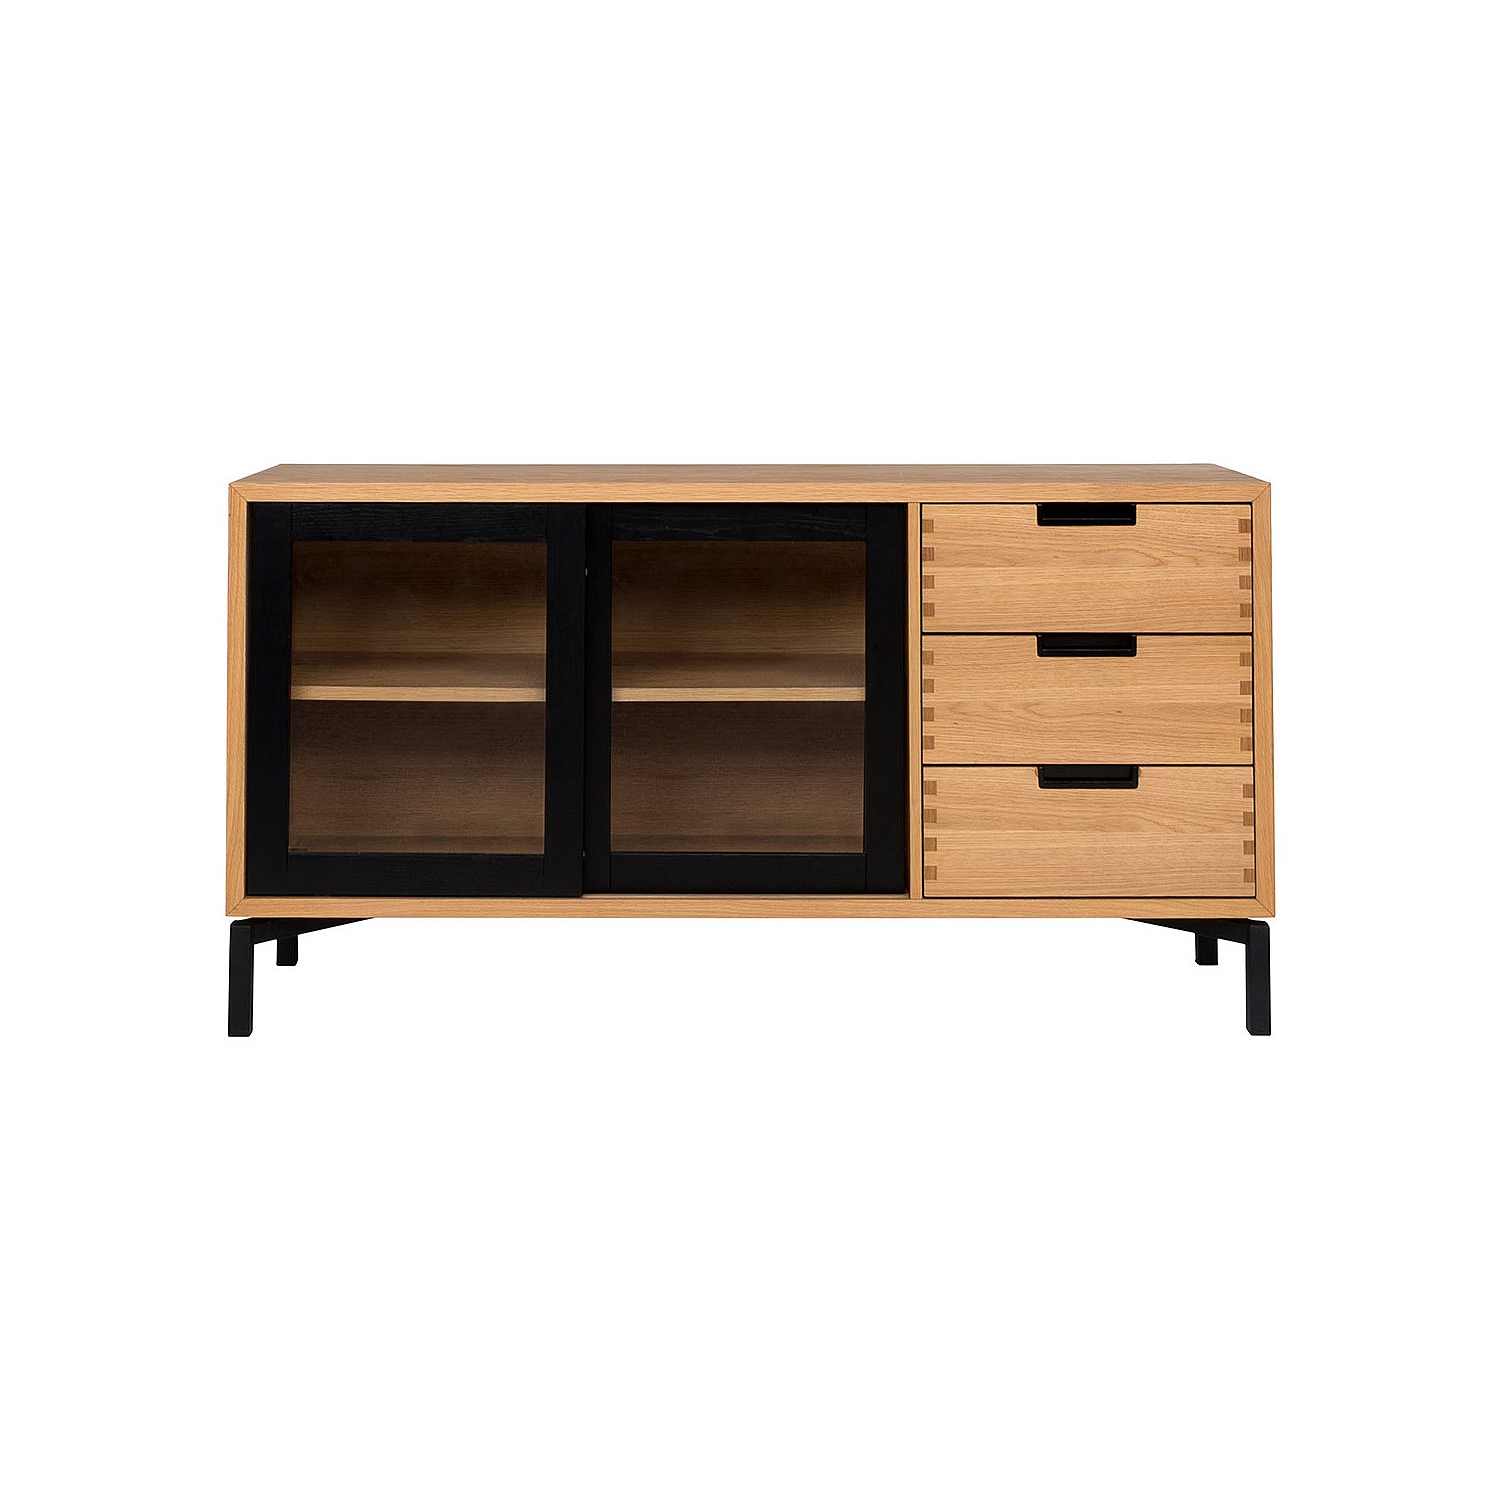 Buffets – Atelier Buffet 2 Door 3 Drawer With Regard To 4 Door Lacquer Buffets (View 8 of 20)